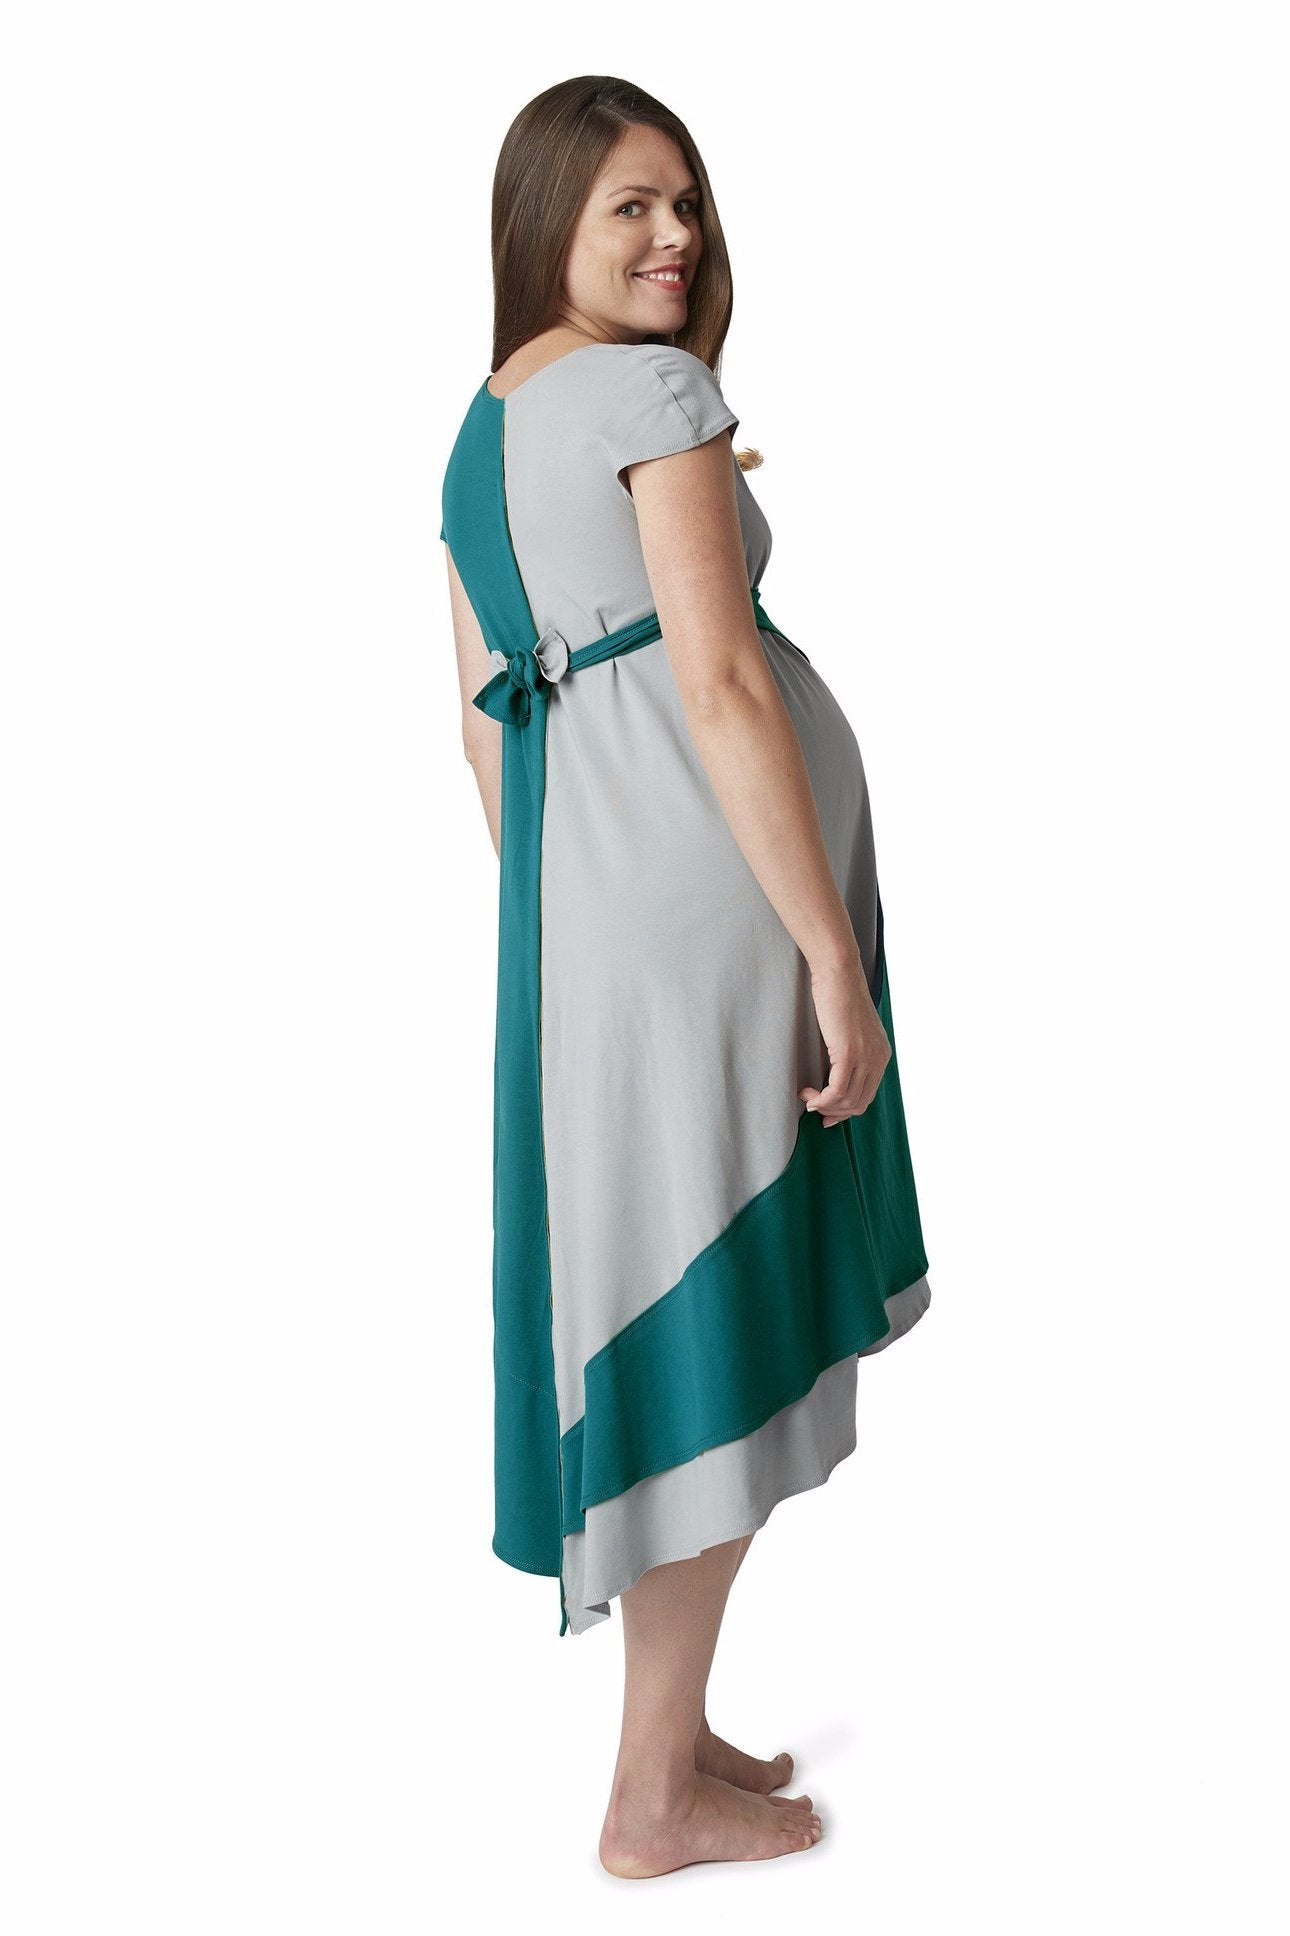 Pretty Pushers Transition Gown for maternity, labor, and nursing